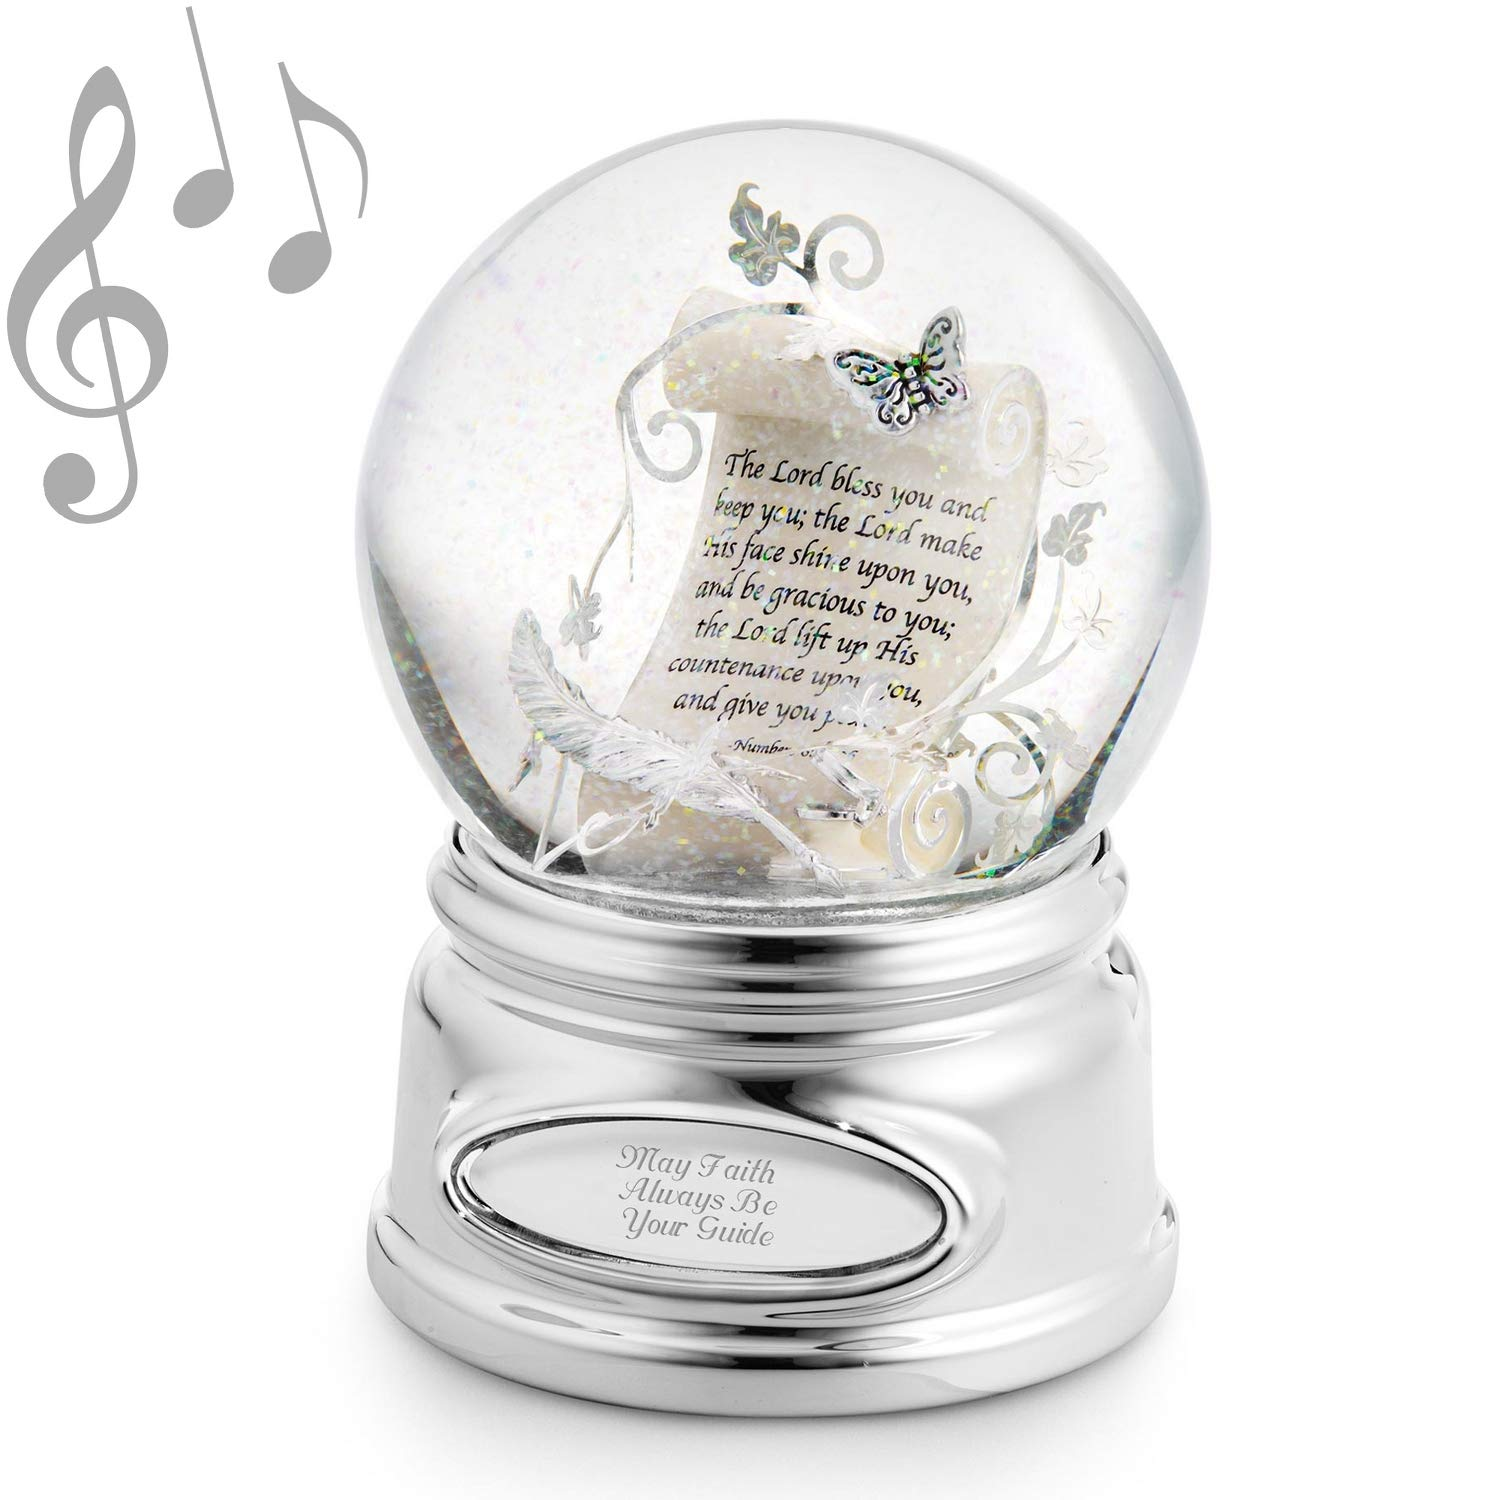 Things Remembered Personalized Inspirational Scroll Musical Snow Globe with Engraving Included by Things Remembered